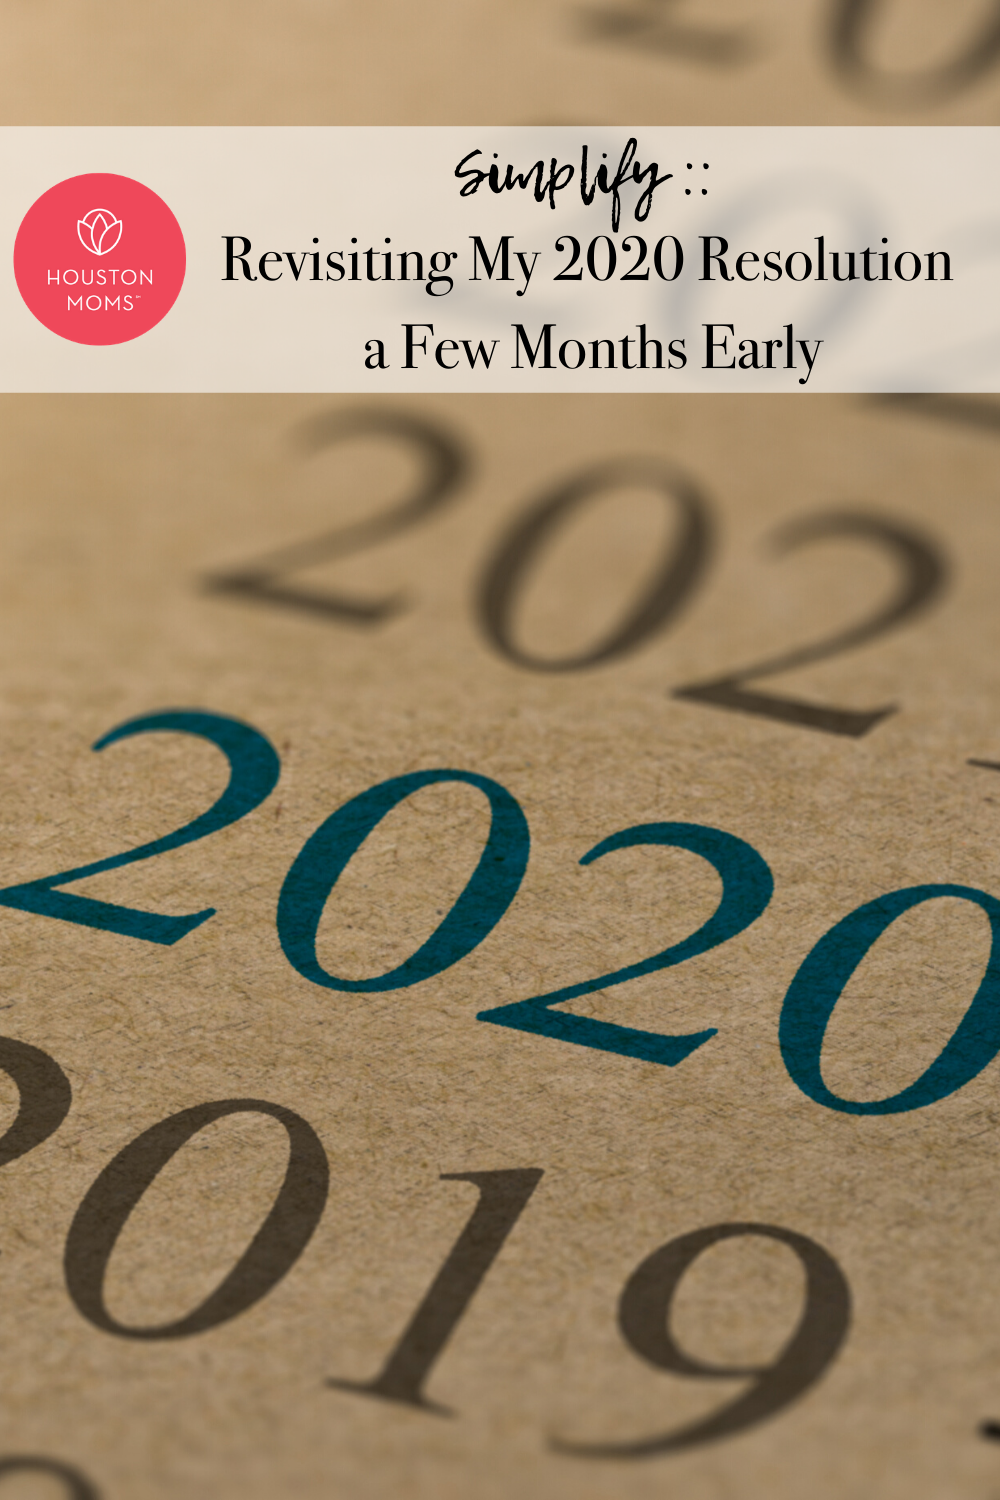 "Houston Moms ""Simplify:: Revisiting My 2020 Resolution a Few Months Early"" #houstonmoms #houstonmomsblog #momsaroundhouston"